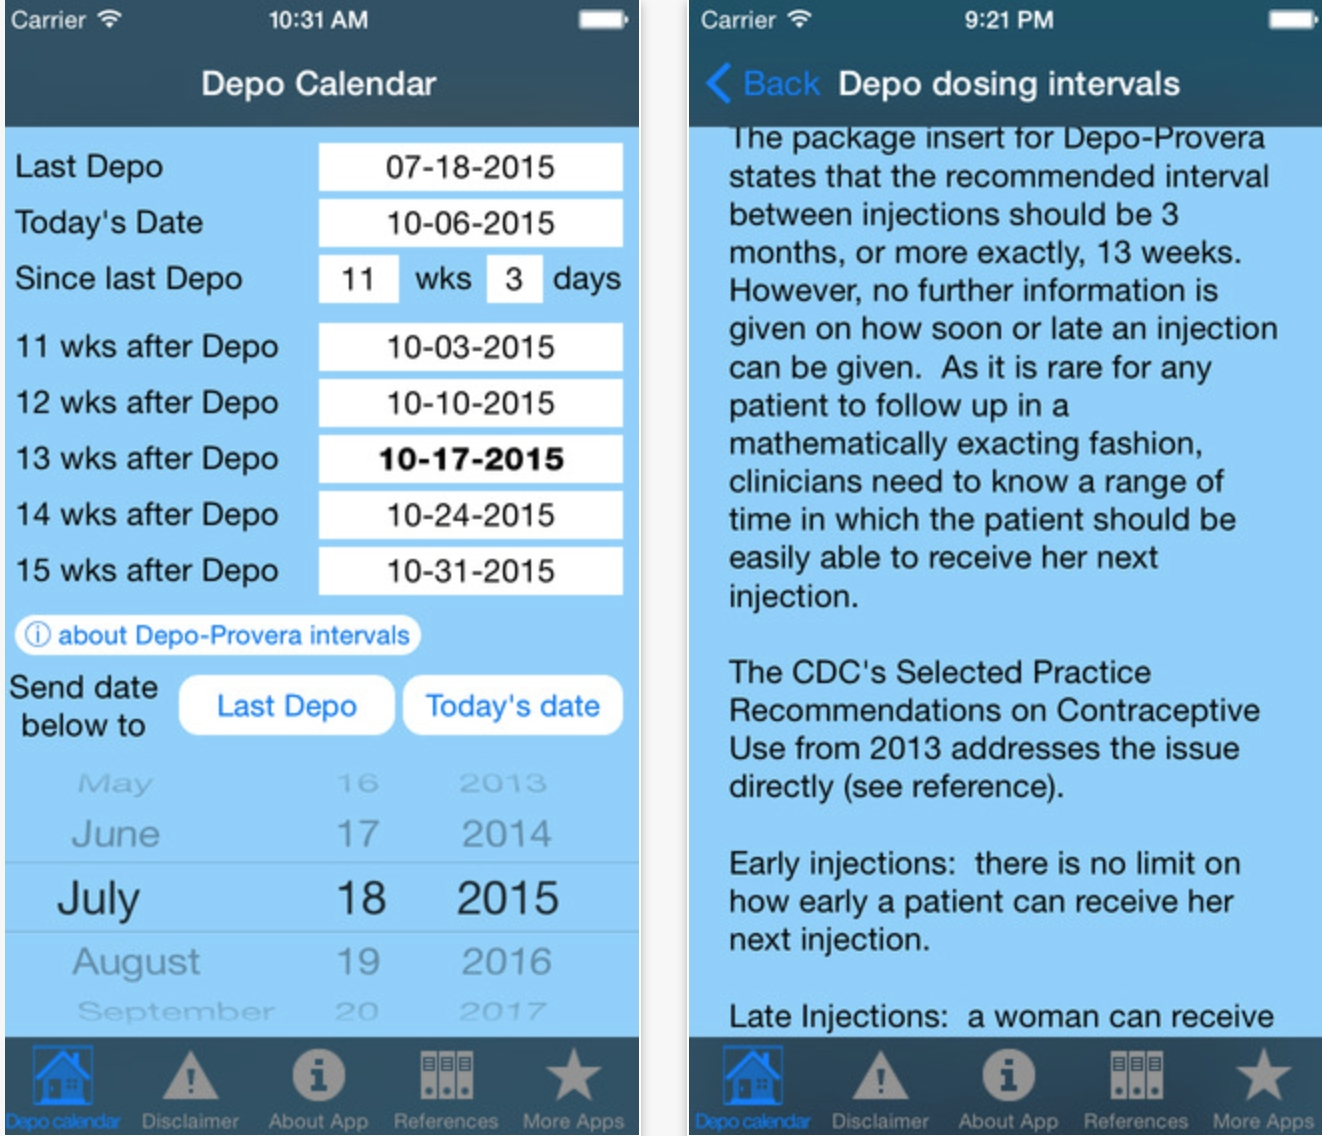 Depo Calendar App Could Significantly Improve Contraception  July 20Th Depo Provera Injection When Is Next One Due